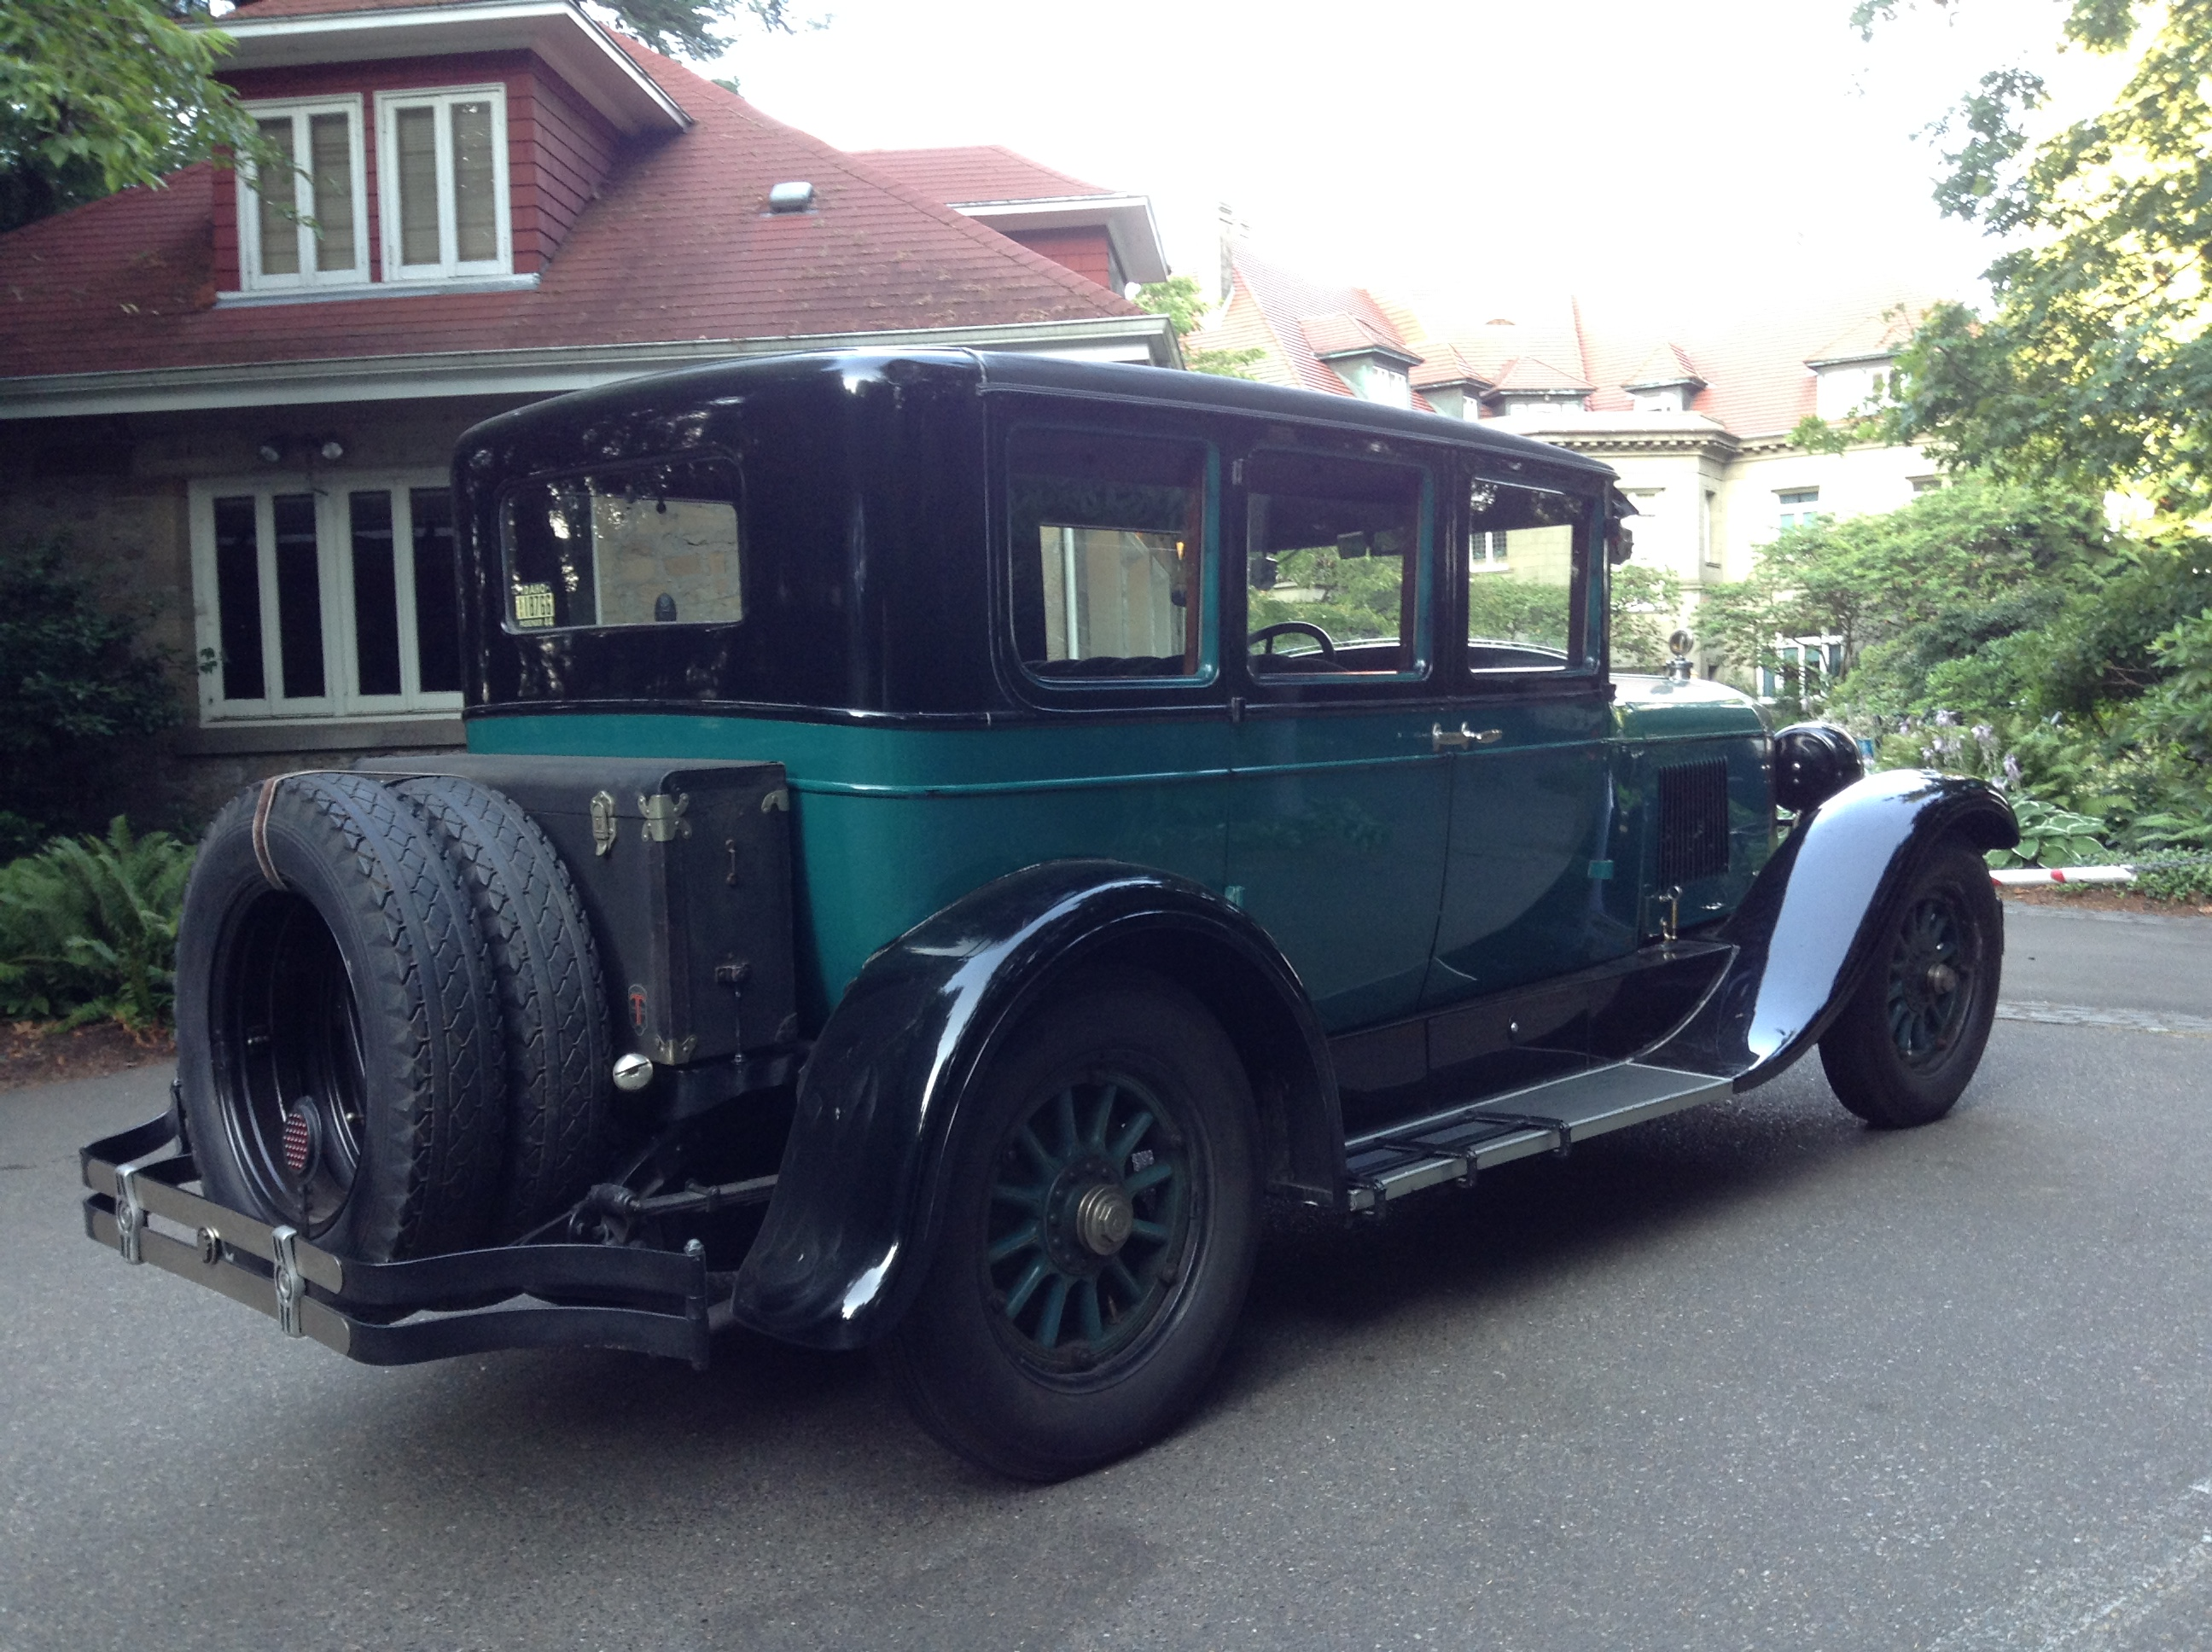 1924 Buick akron OH craigslist - Buick - Buy/Sell ...